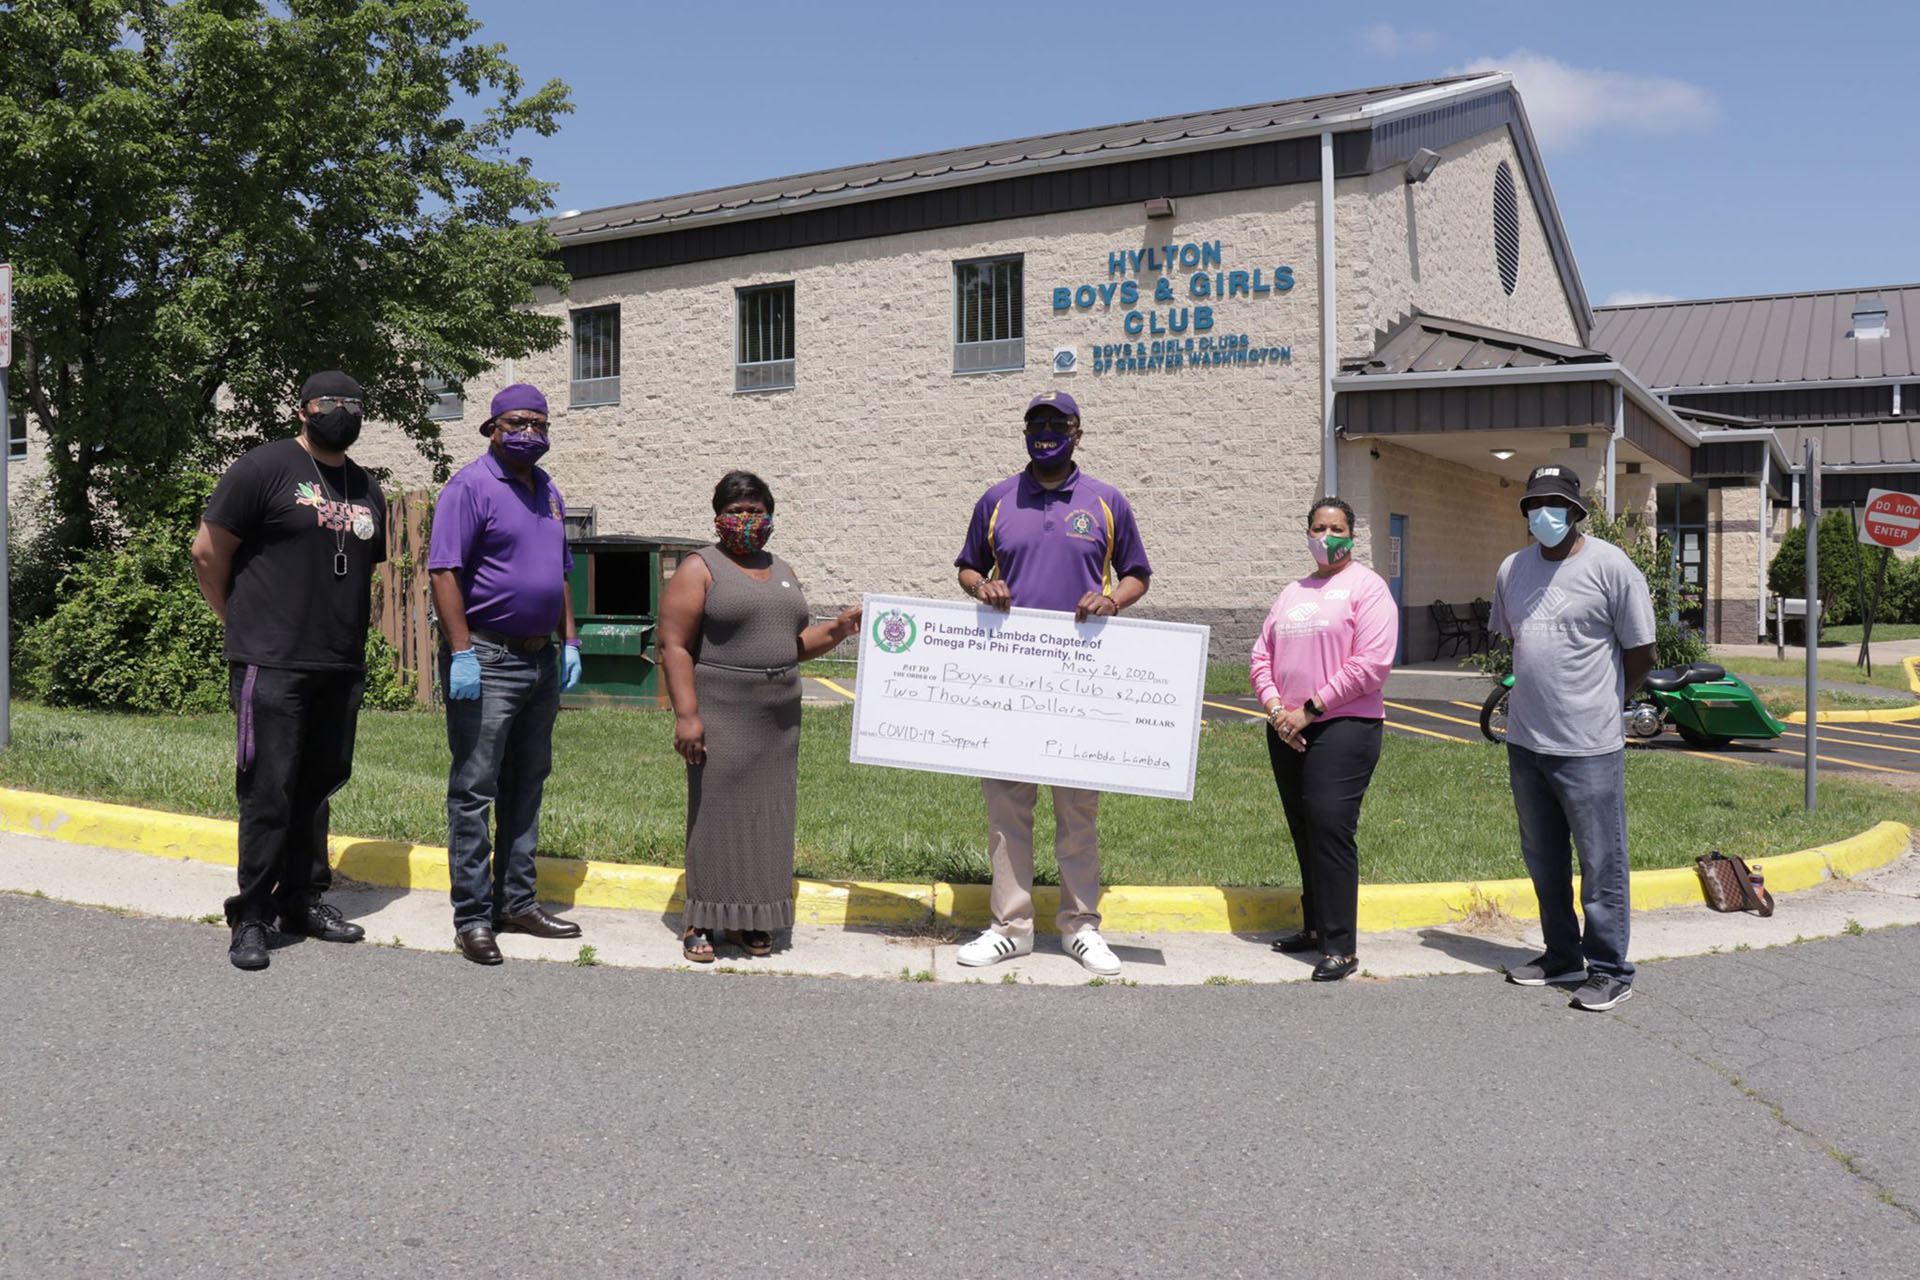 Boys and Girls Club receives support from fraternity